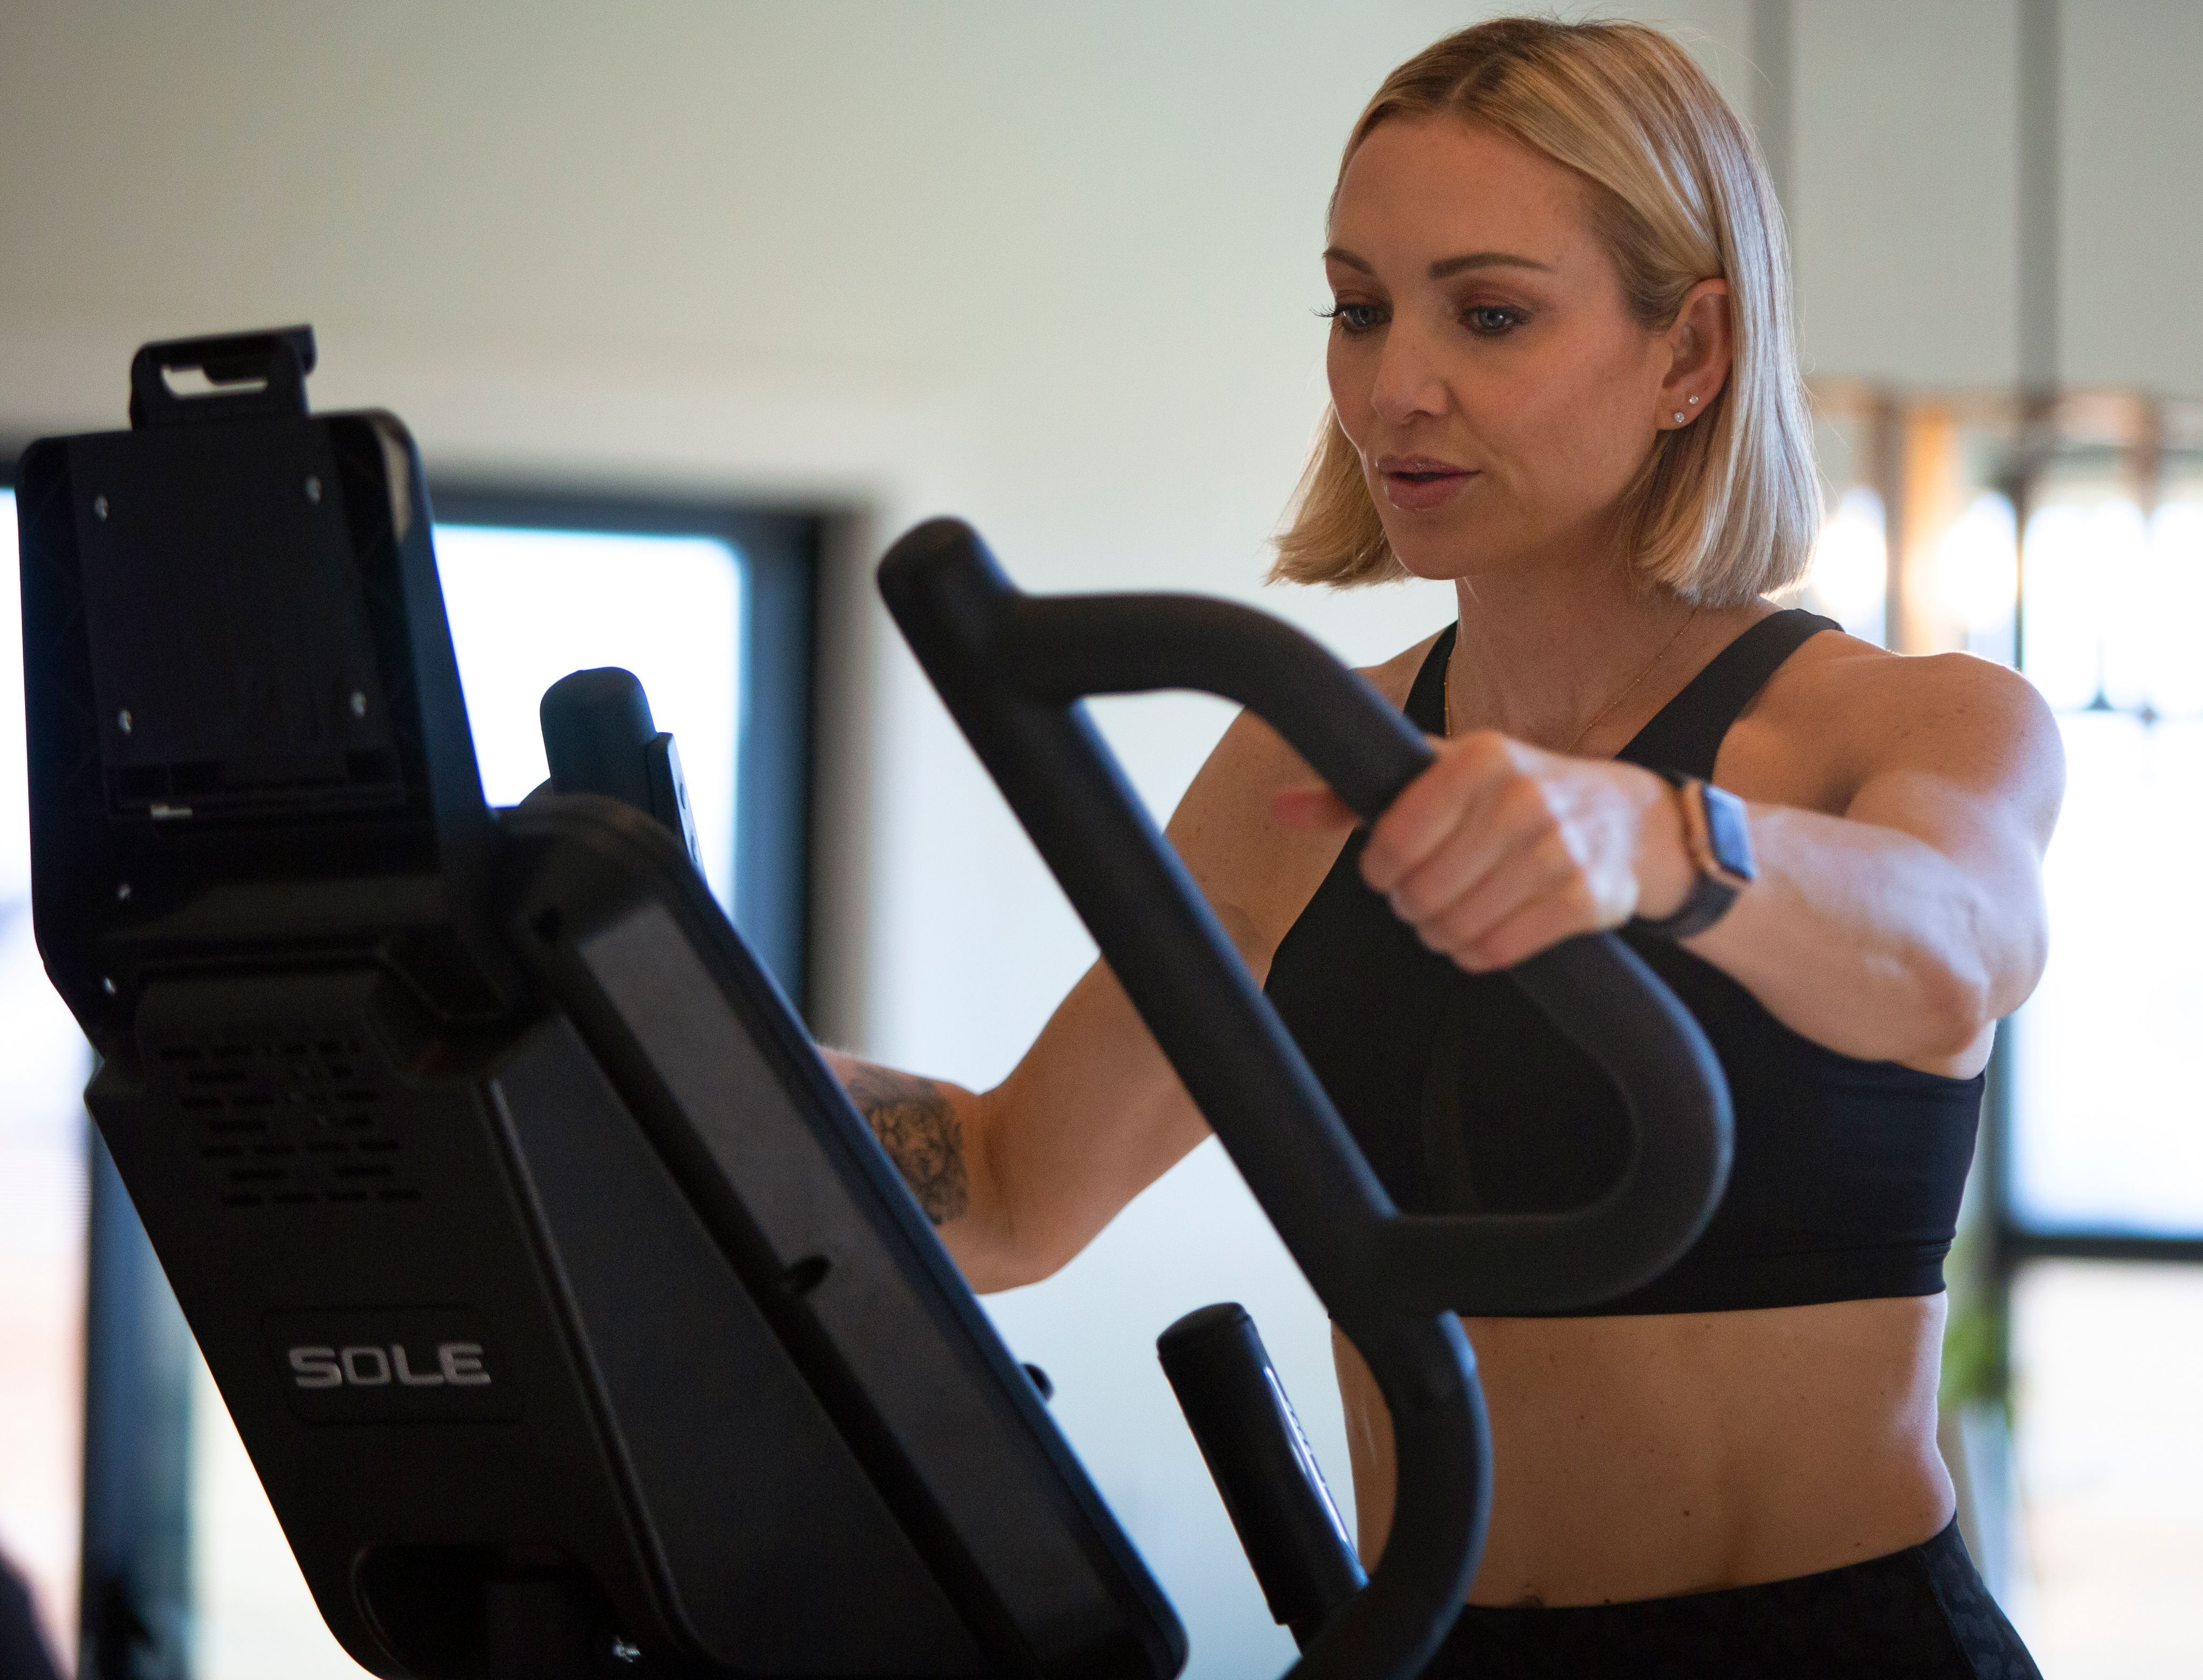 Here S To All Our Amazing Sole Women Out There We Just Want You To Know We See All Your Hard Work And We Bel Exercise Bikes Ellipticals Best At Home Workout